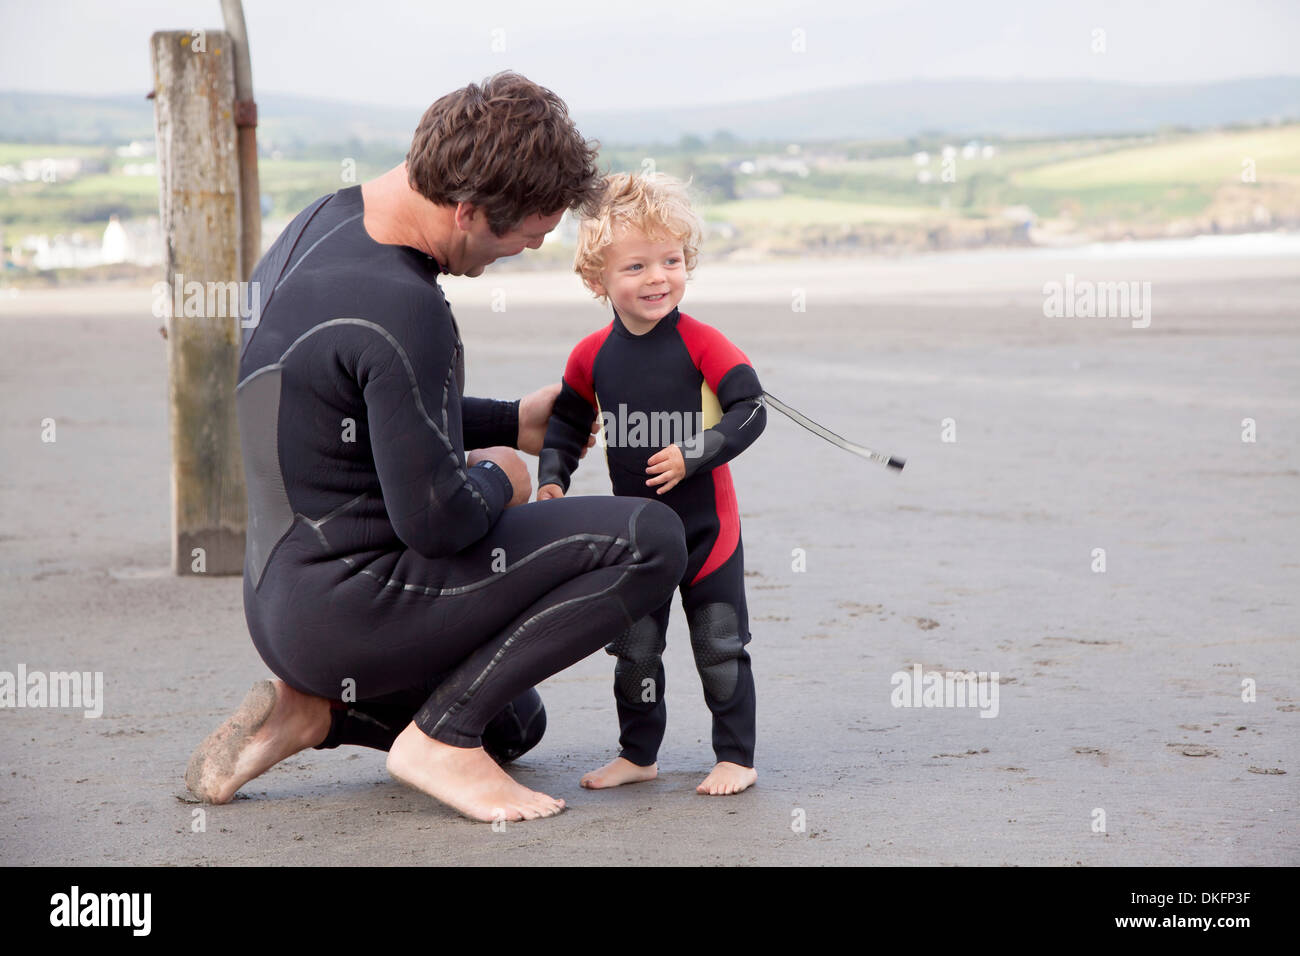 Father and son on beach wearing wet suits - Stock Image